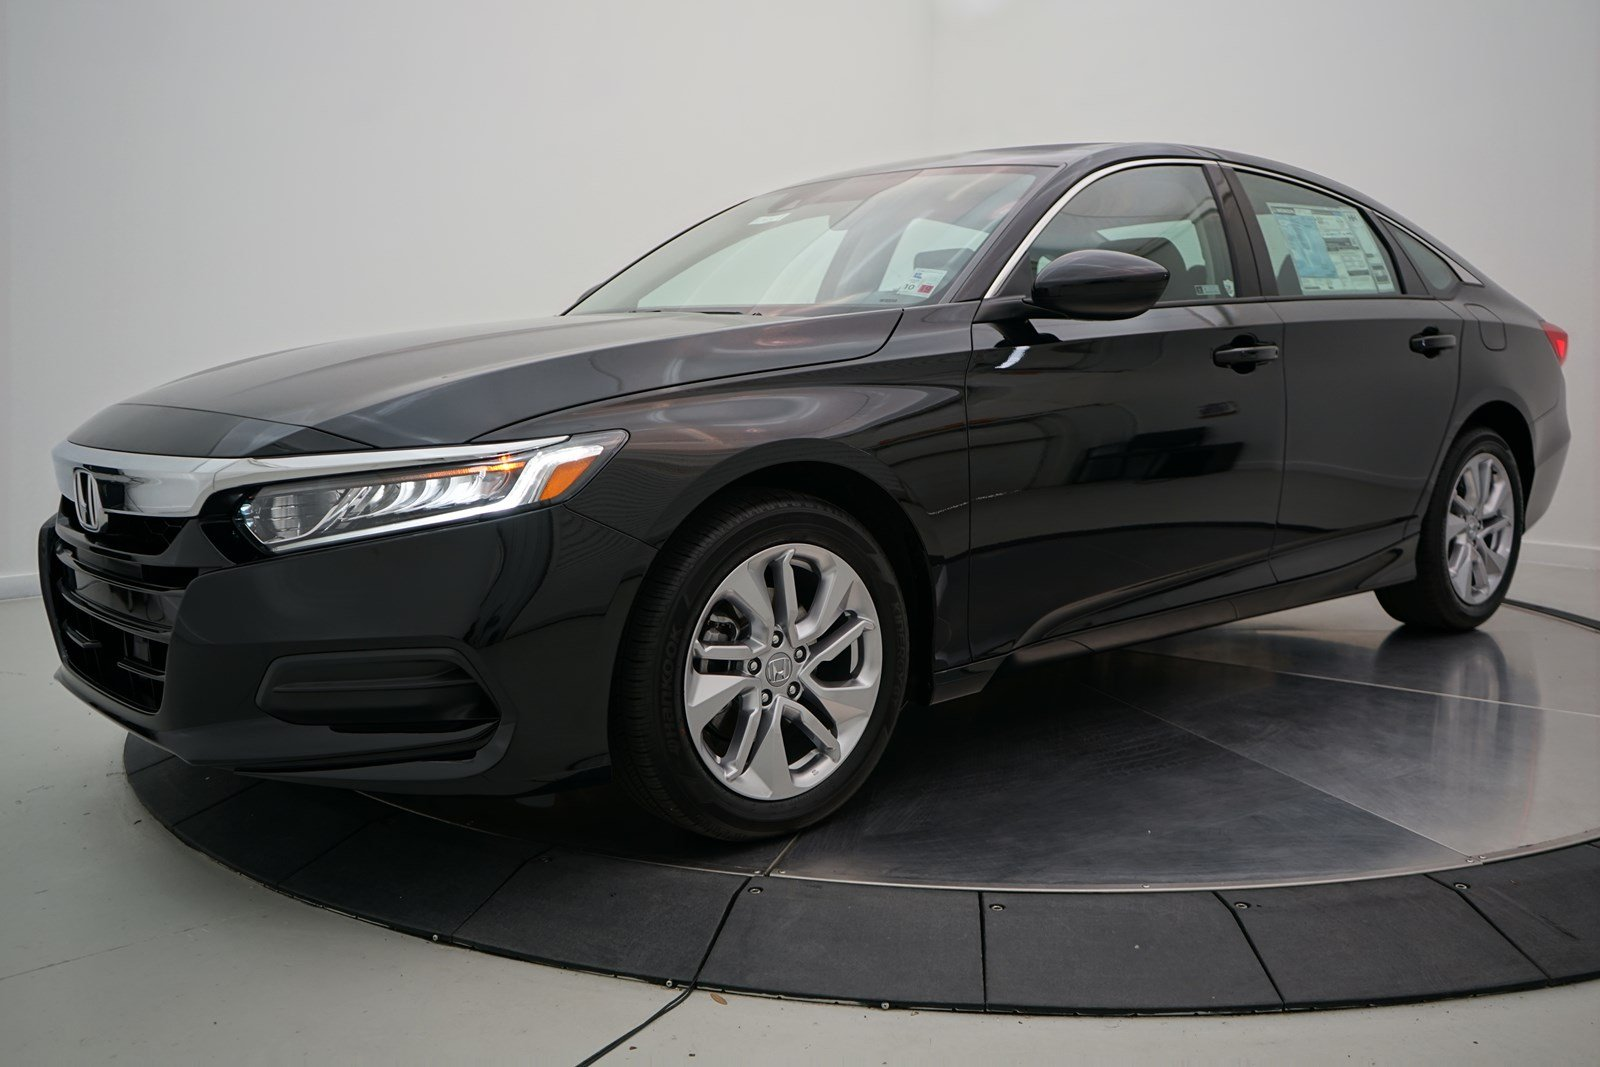 Honda Accord Lx >> New 2020 Honda Accord Sedan Lx 1 5t